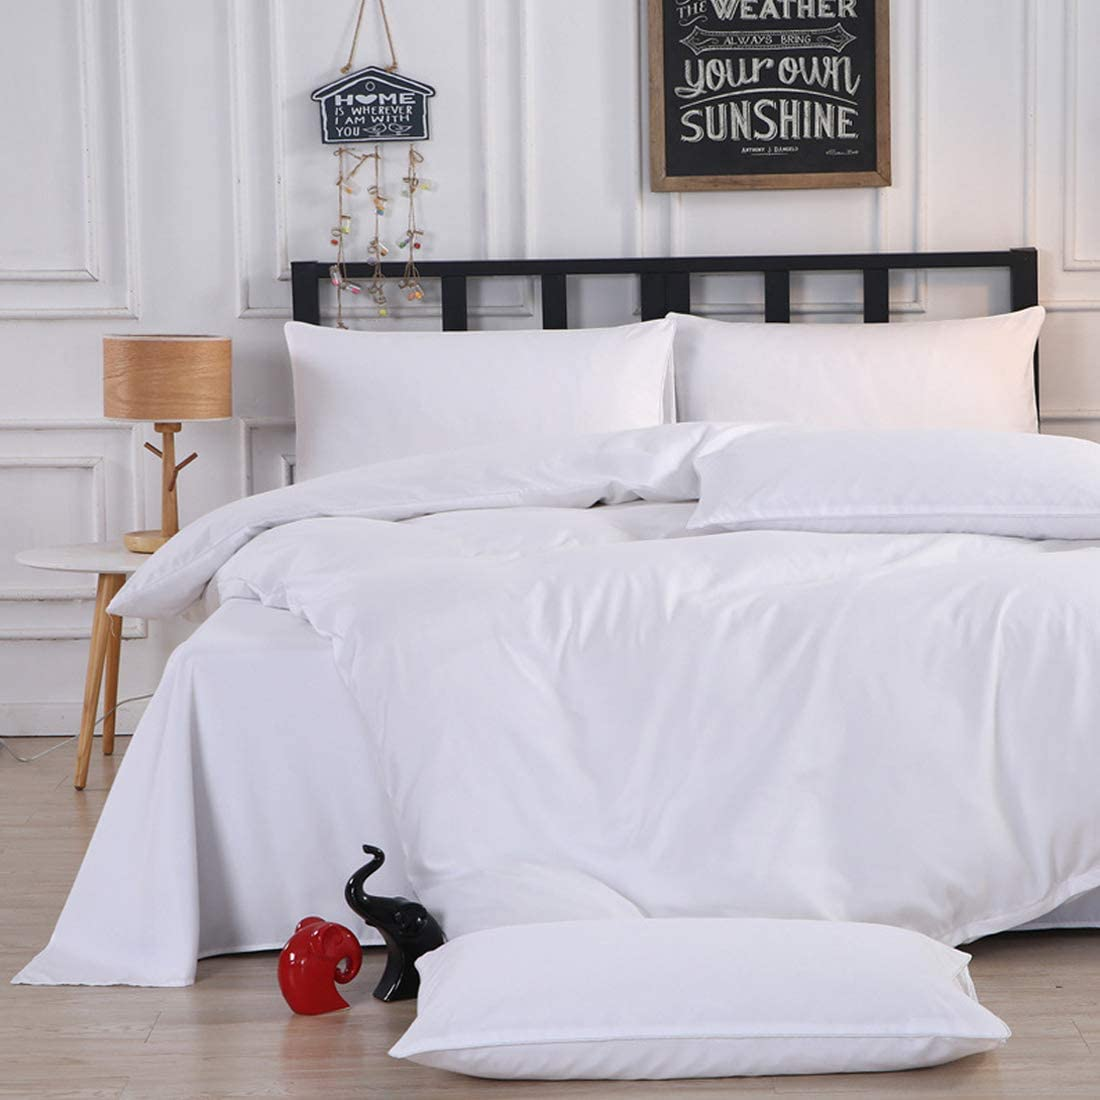 EDILLY 3 Piece Duvet Cover Set Queen Size, Washed Cotton Duvet Cover White,Ultra Soft and Easy Care,Simple Style Bedding Set with Zipper